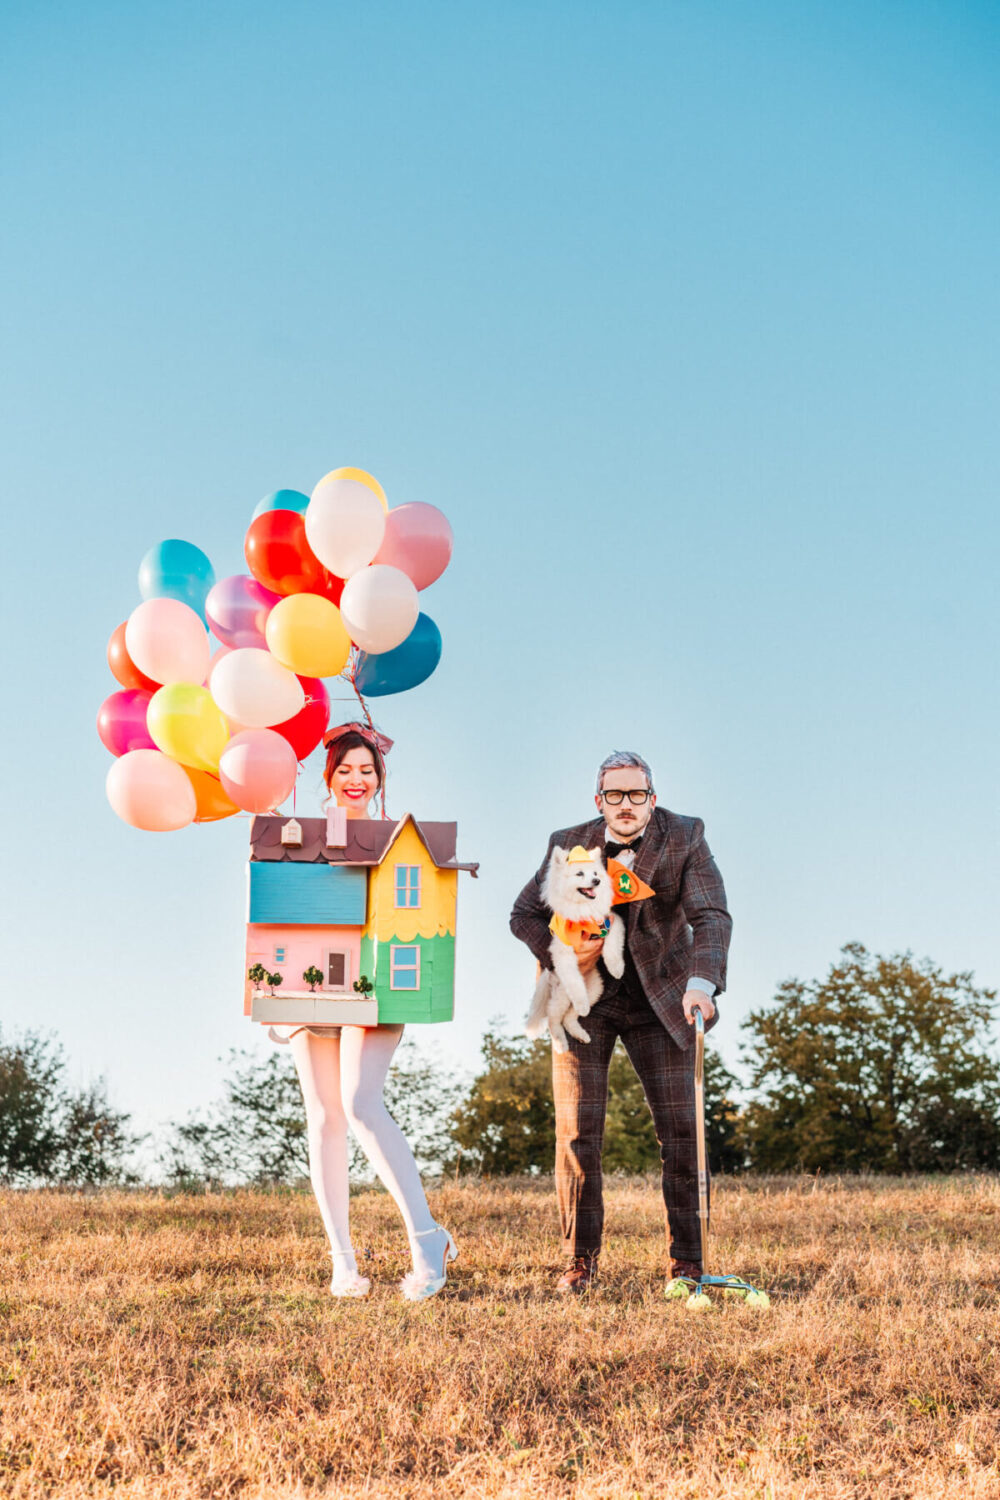 Via @officiallyquigley, @jackpoticorn, and @champagneunicorns. The 20 Best Couples Halloween Costume Ideas For 2021 Wonder Forest